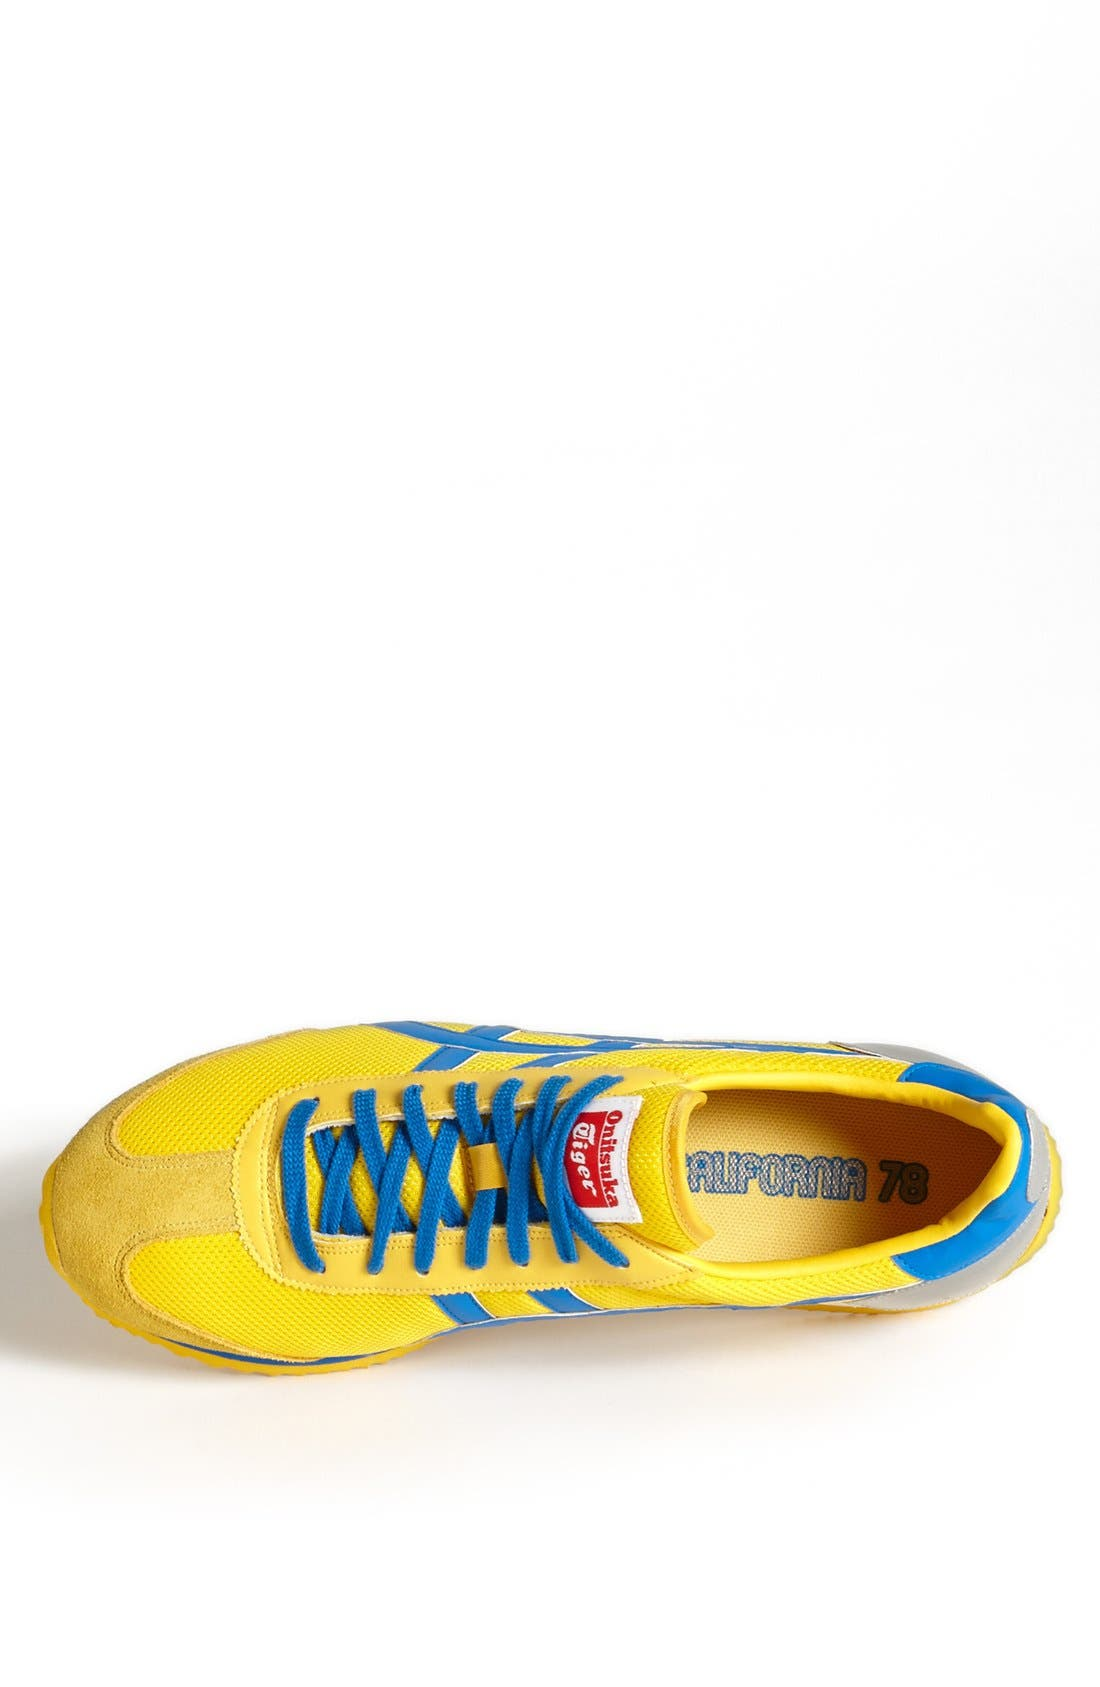 Alternate Image 3  - Onitsuka Tiger™ 'California 78' Sneaker (Men)